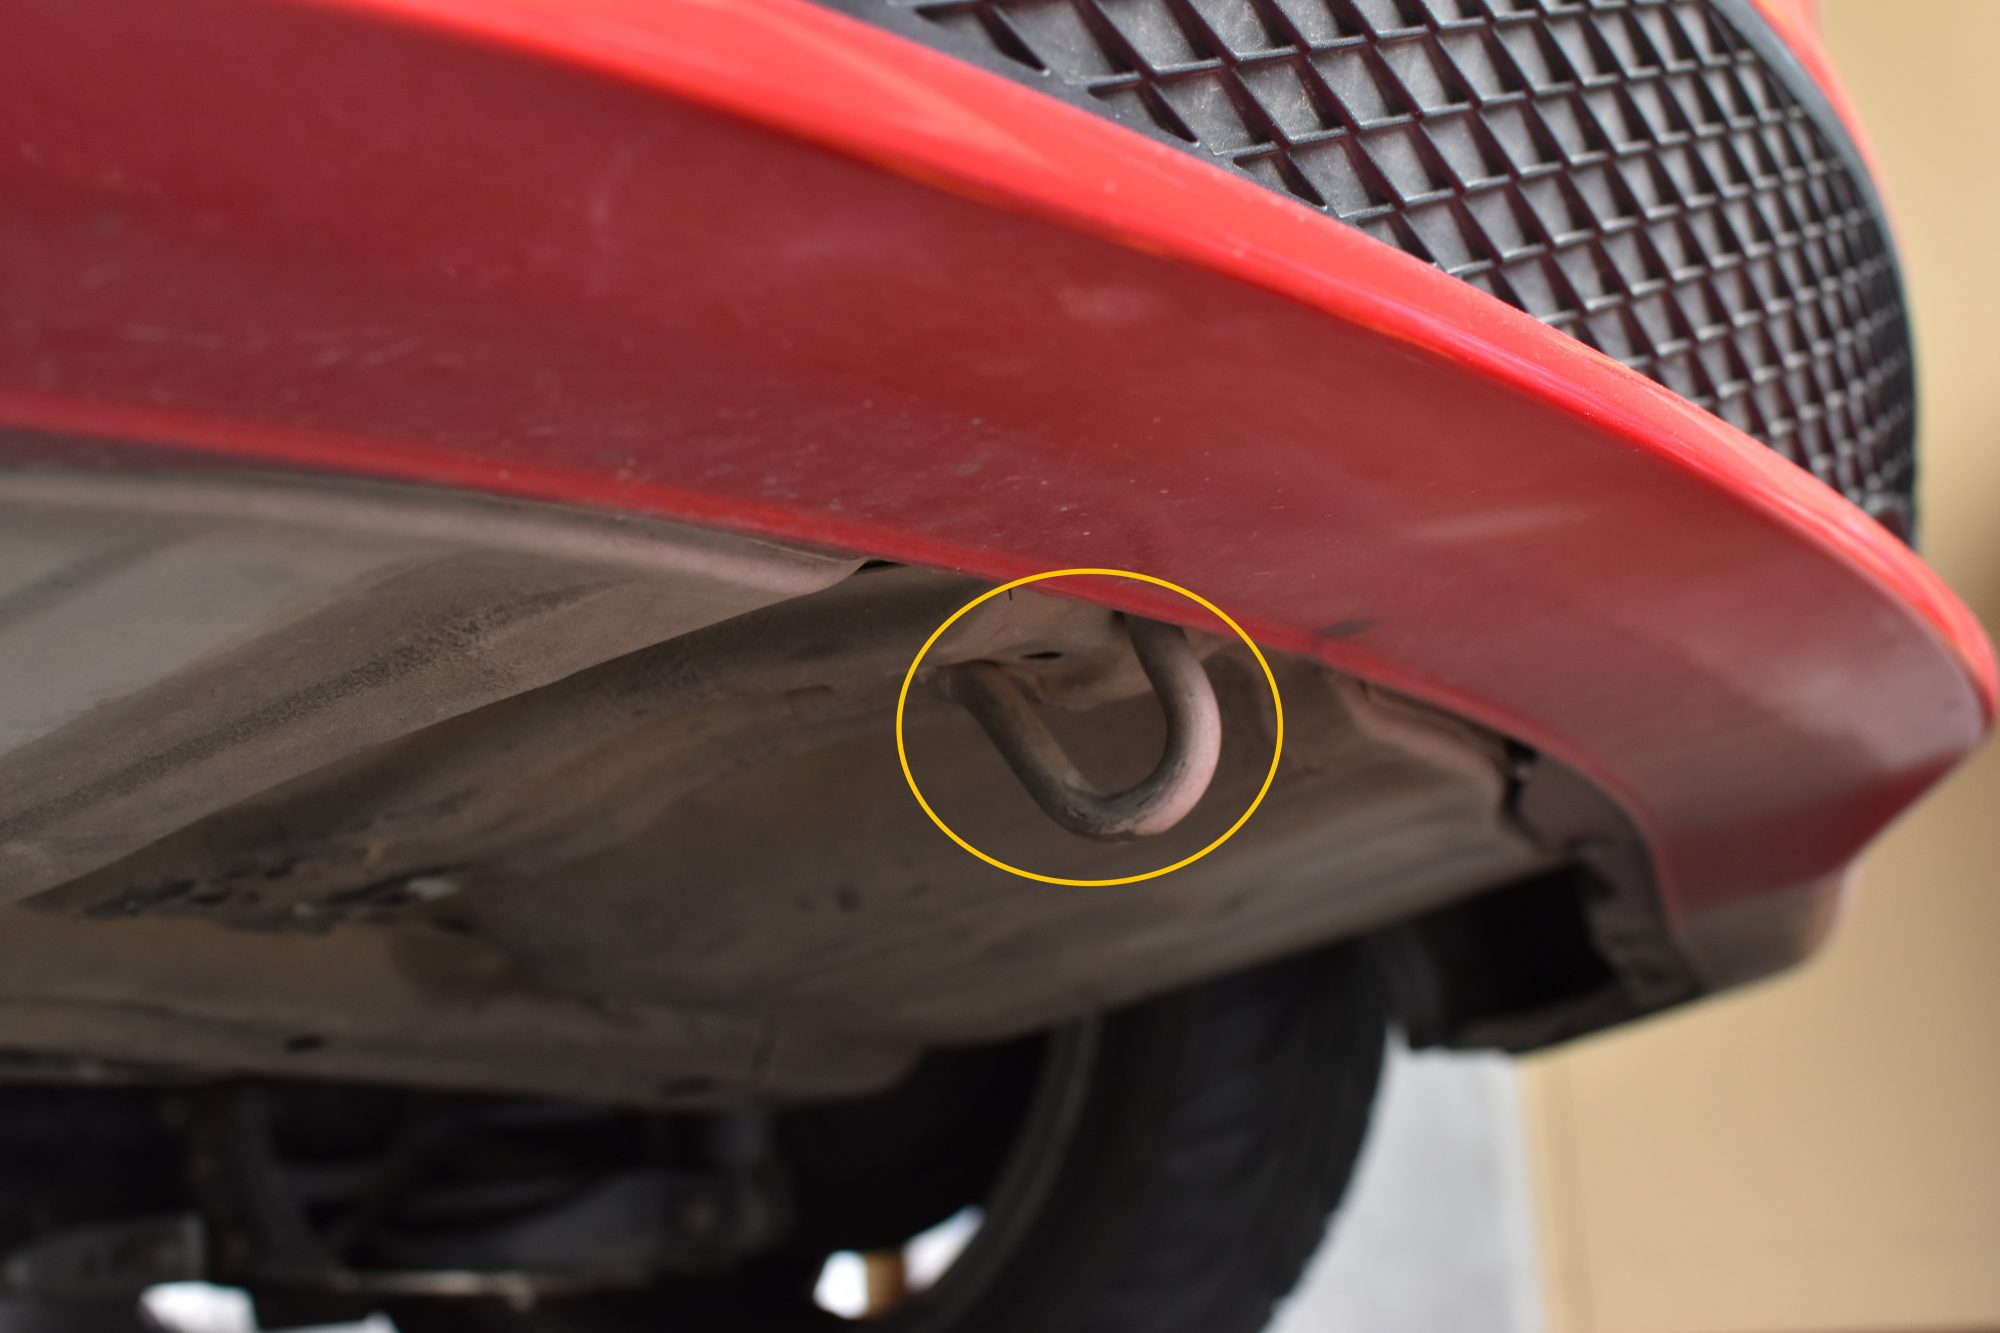 Universal Tow Hook